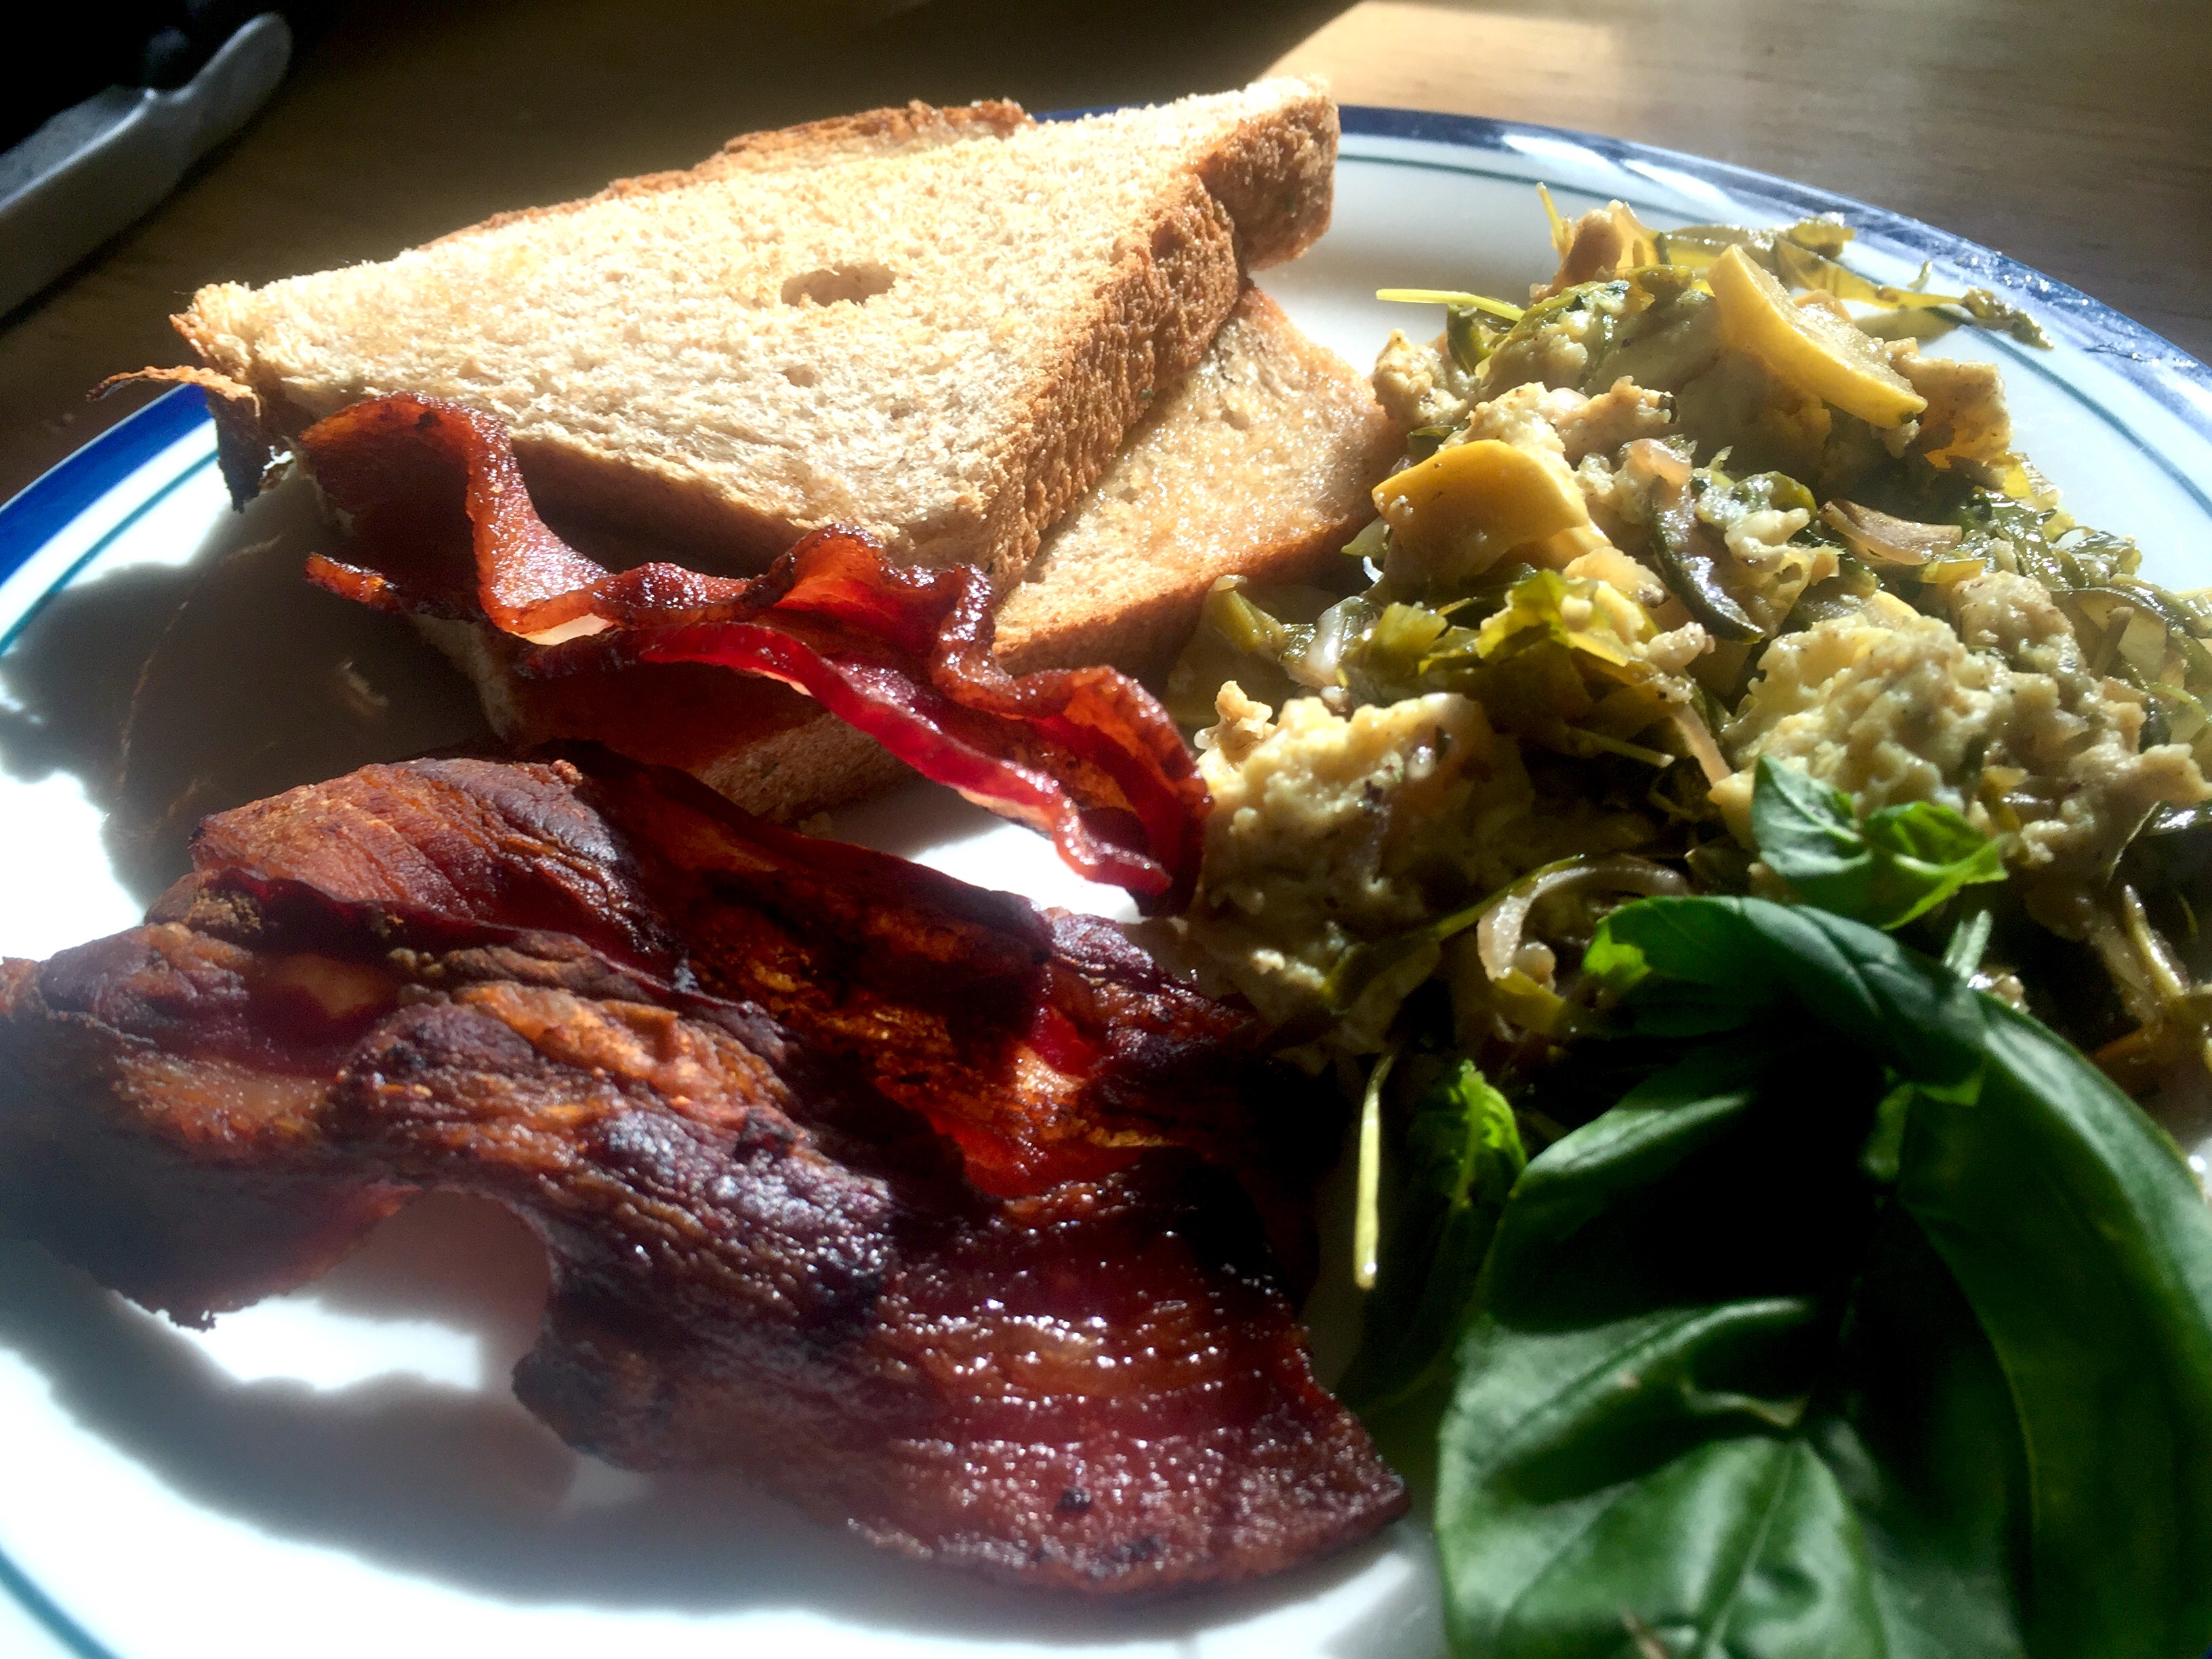 Veggie Scramble, Bacon, Toast